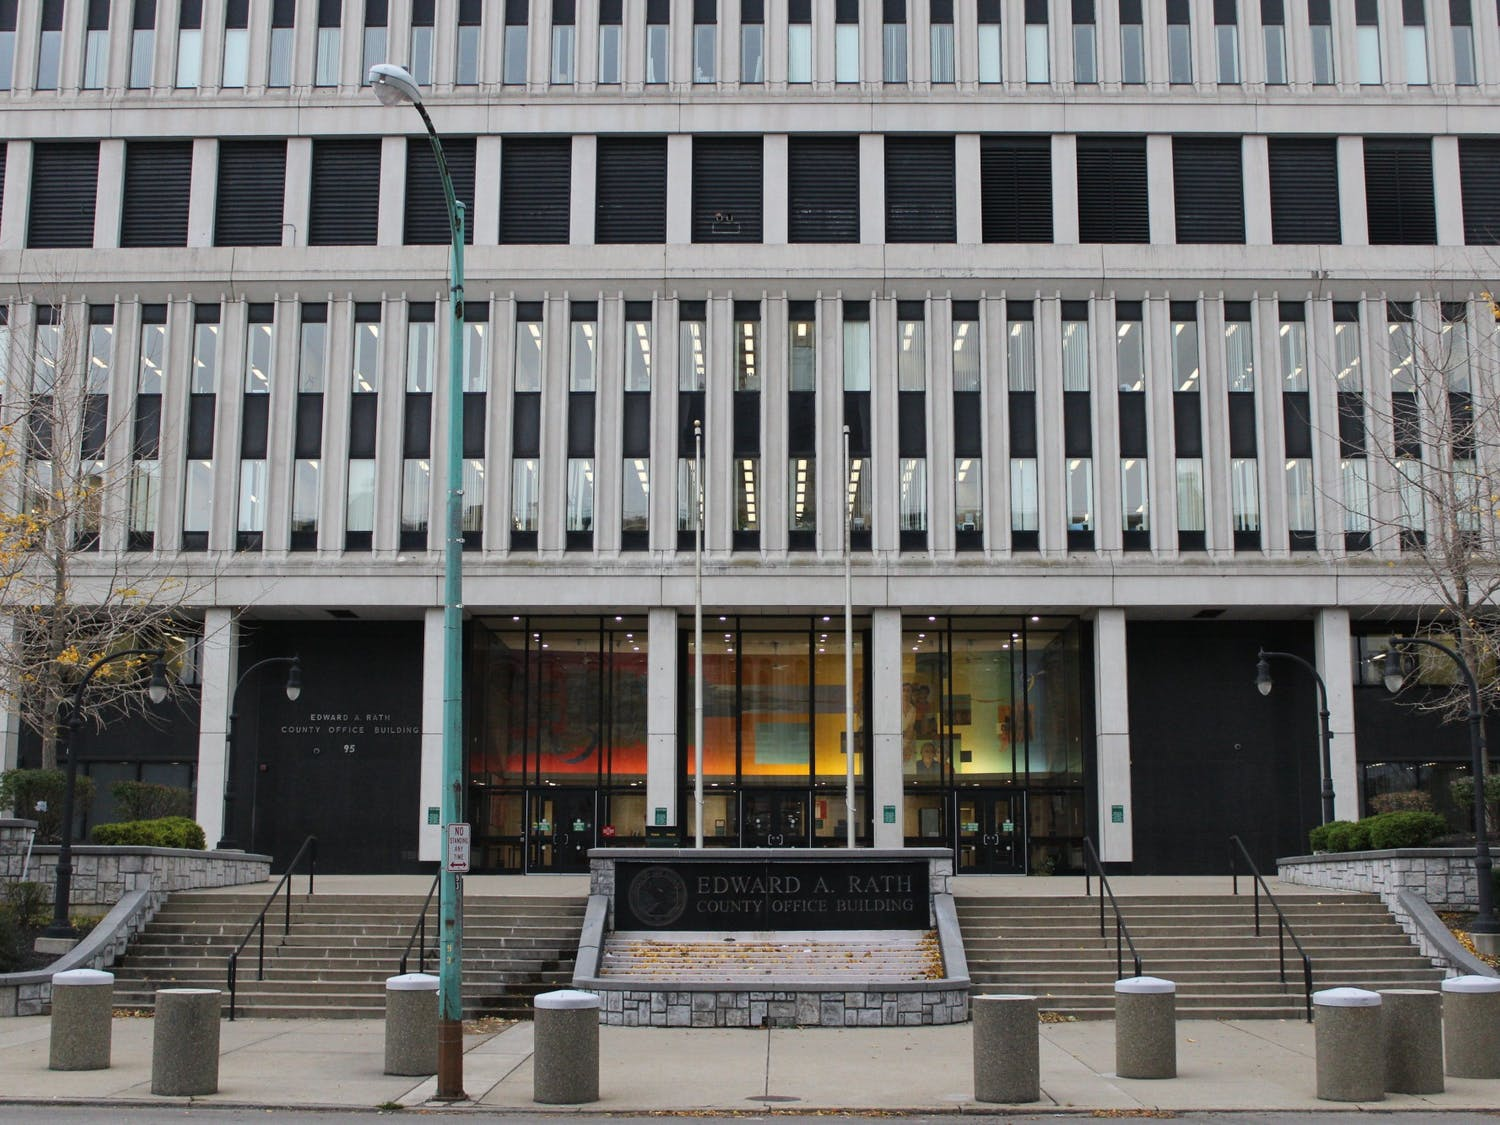 Erie county executive office on 95 Franklin St.